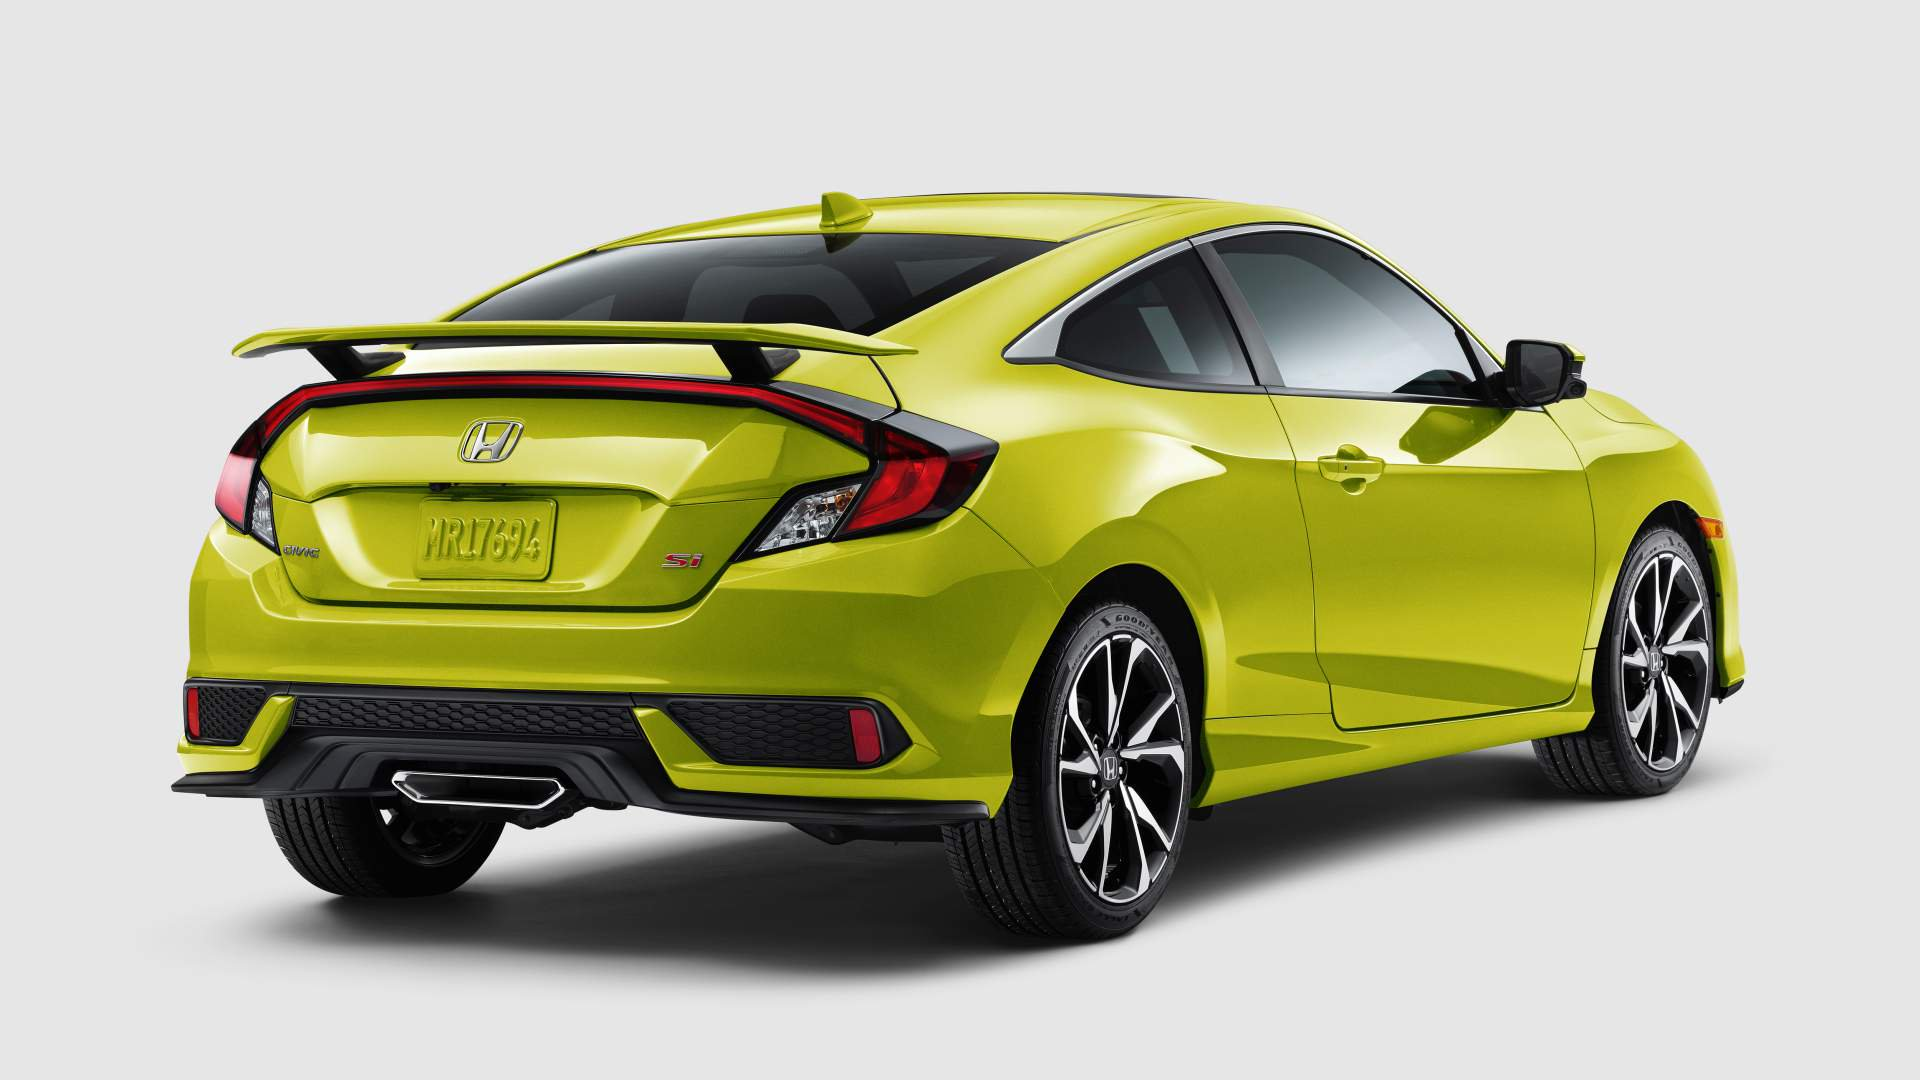 38 All New 2019 Honda Civic Si Sedan Pricing for 2019 Honda Civic Si Sedan